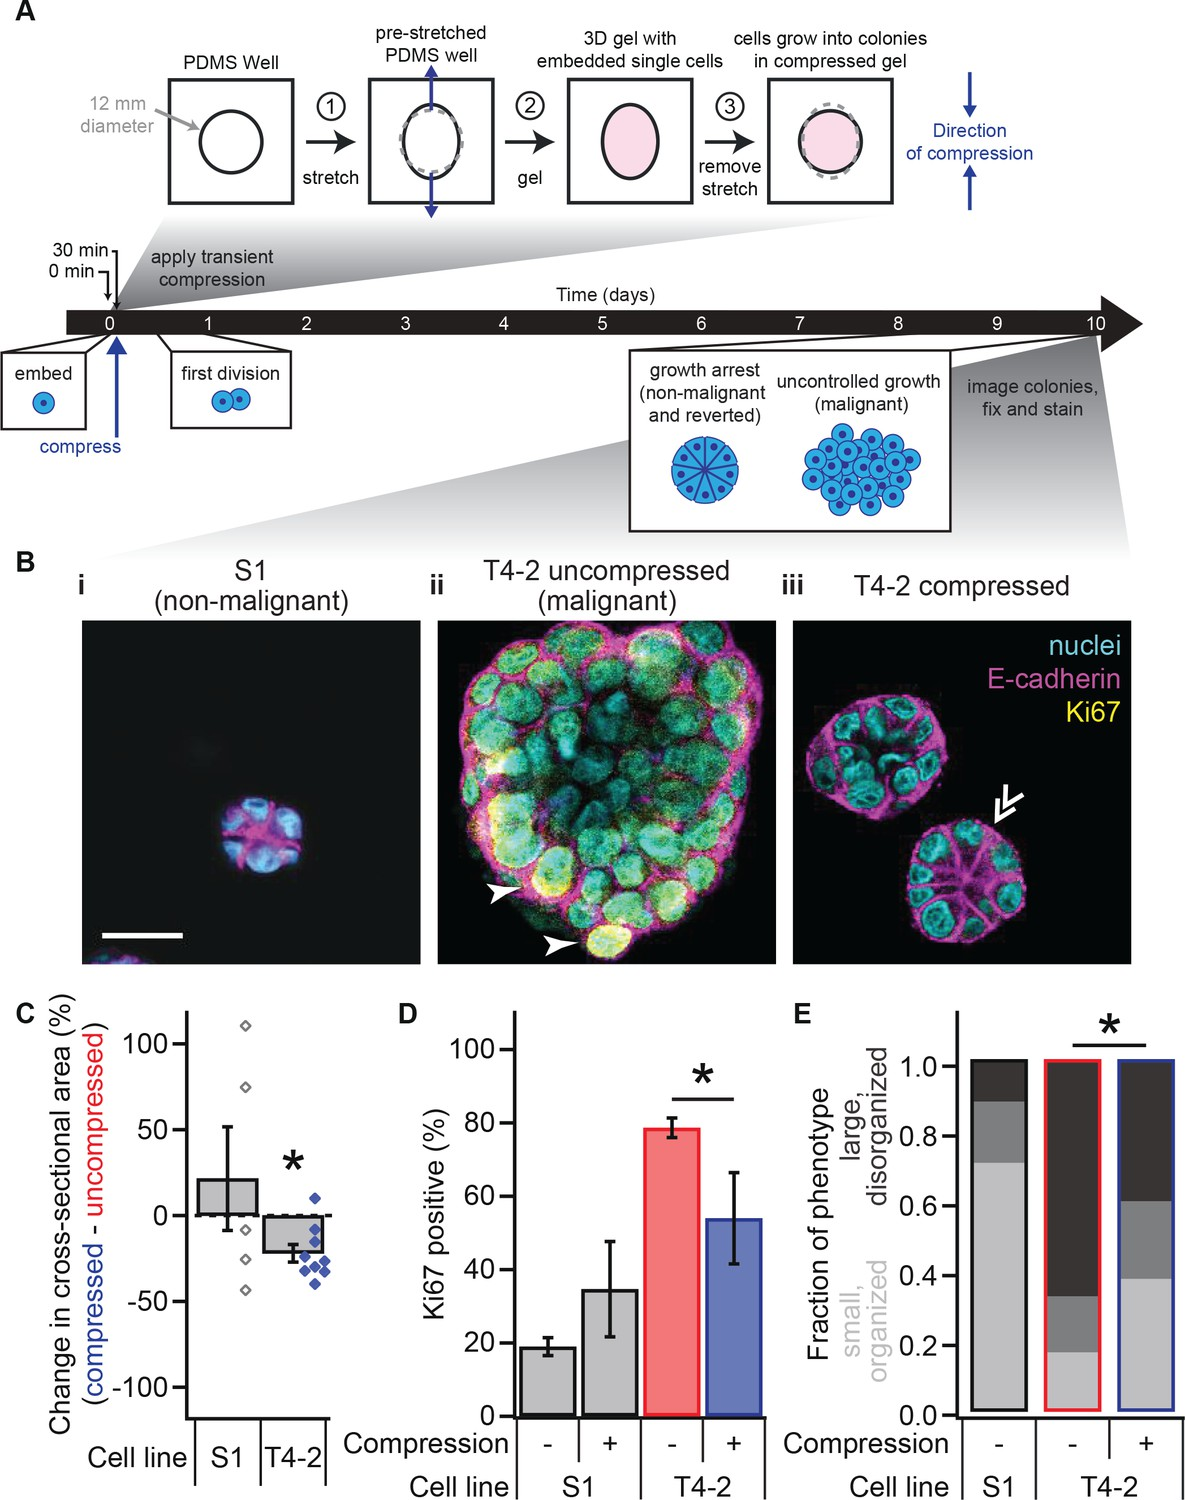 Transient External Force Induces Phenotypic Reversion Of Malignant Lincoln Sa 200 Parts Breakdown Compression Breast Epithelial Cells Grown In Laminin Rich Ecm Reverts The Phenotype